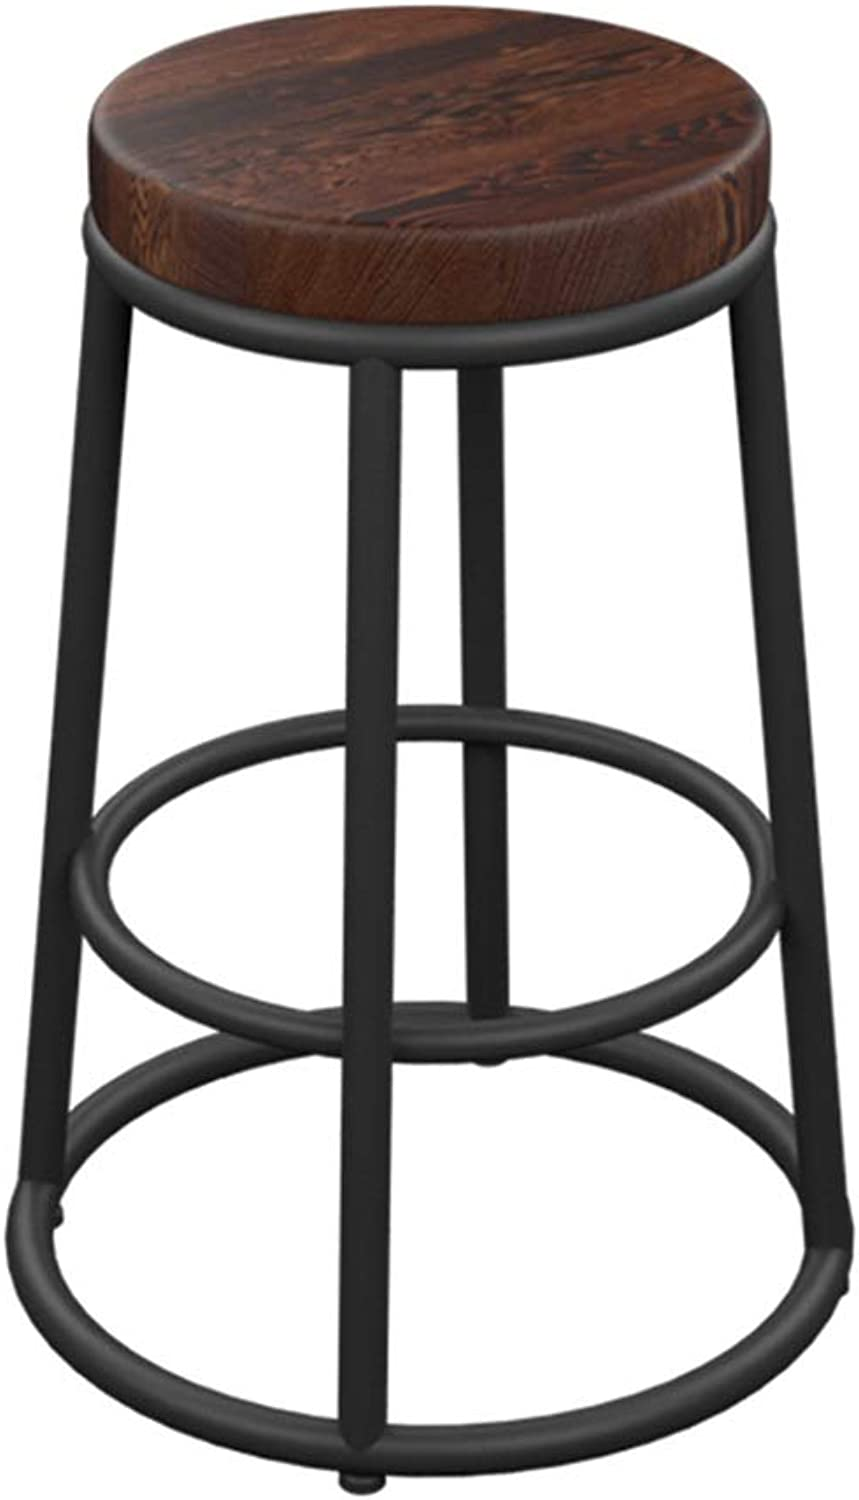 Round Barstool Iron Breakfast Dining Stool for Kitchen Bar Counter Home Commercial Chair High Stool with Wooden Seat and Footrest LOFT Industrial Style (Size   Height 65cm)